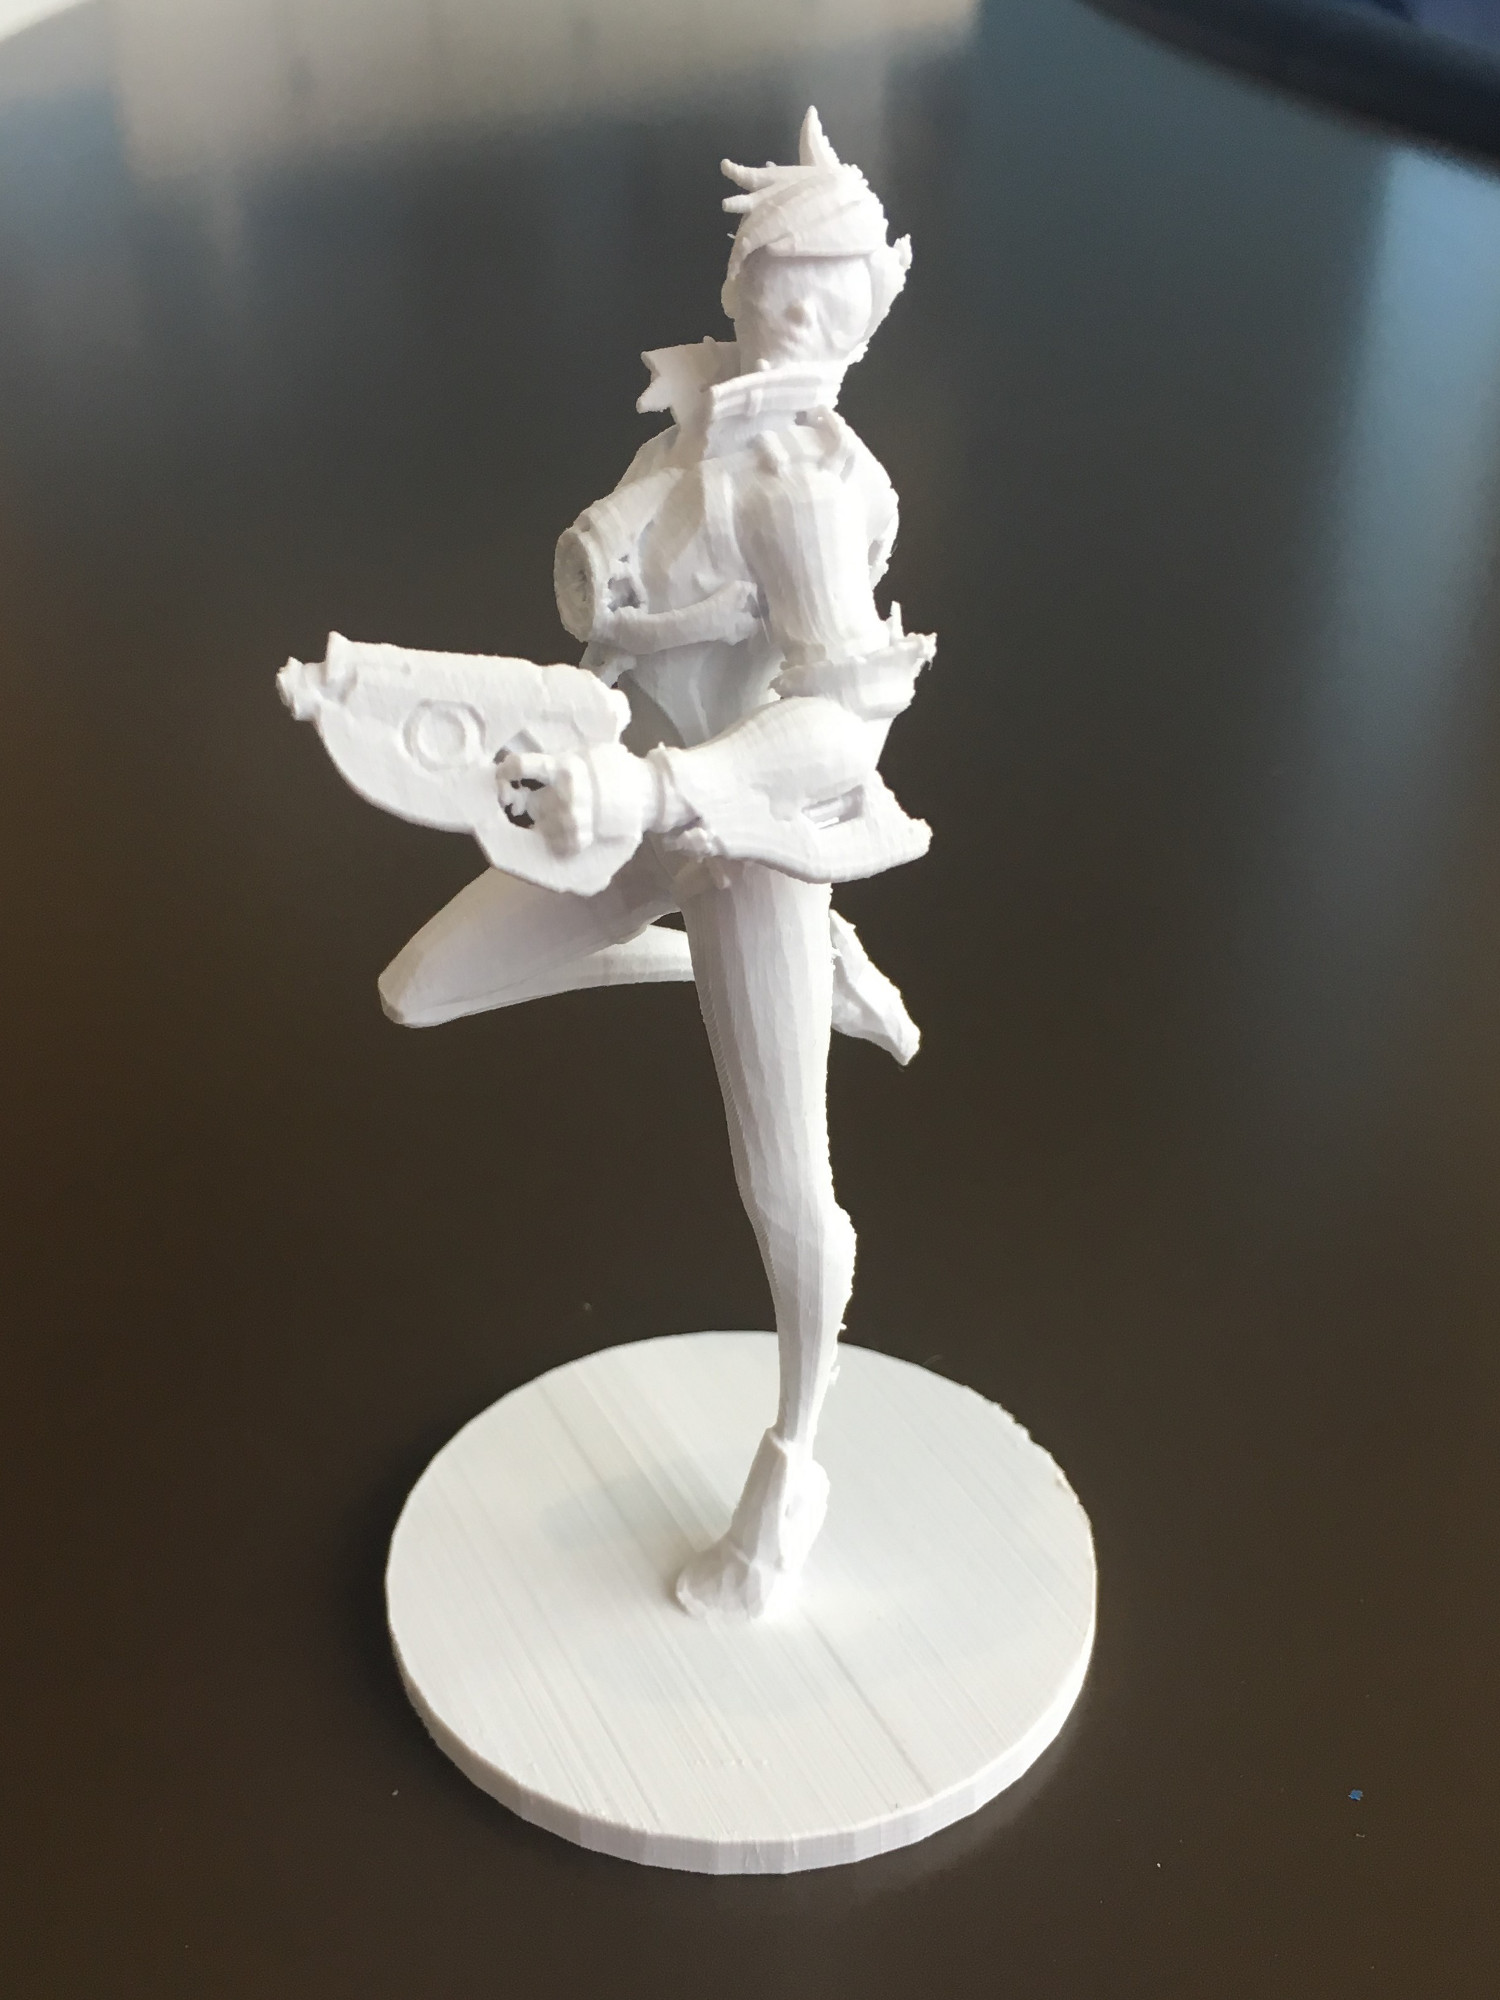 3D printed figurine of Tracer from Overwatch